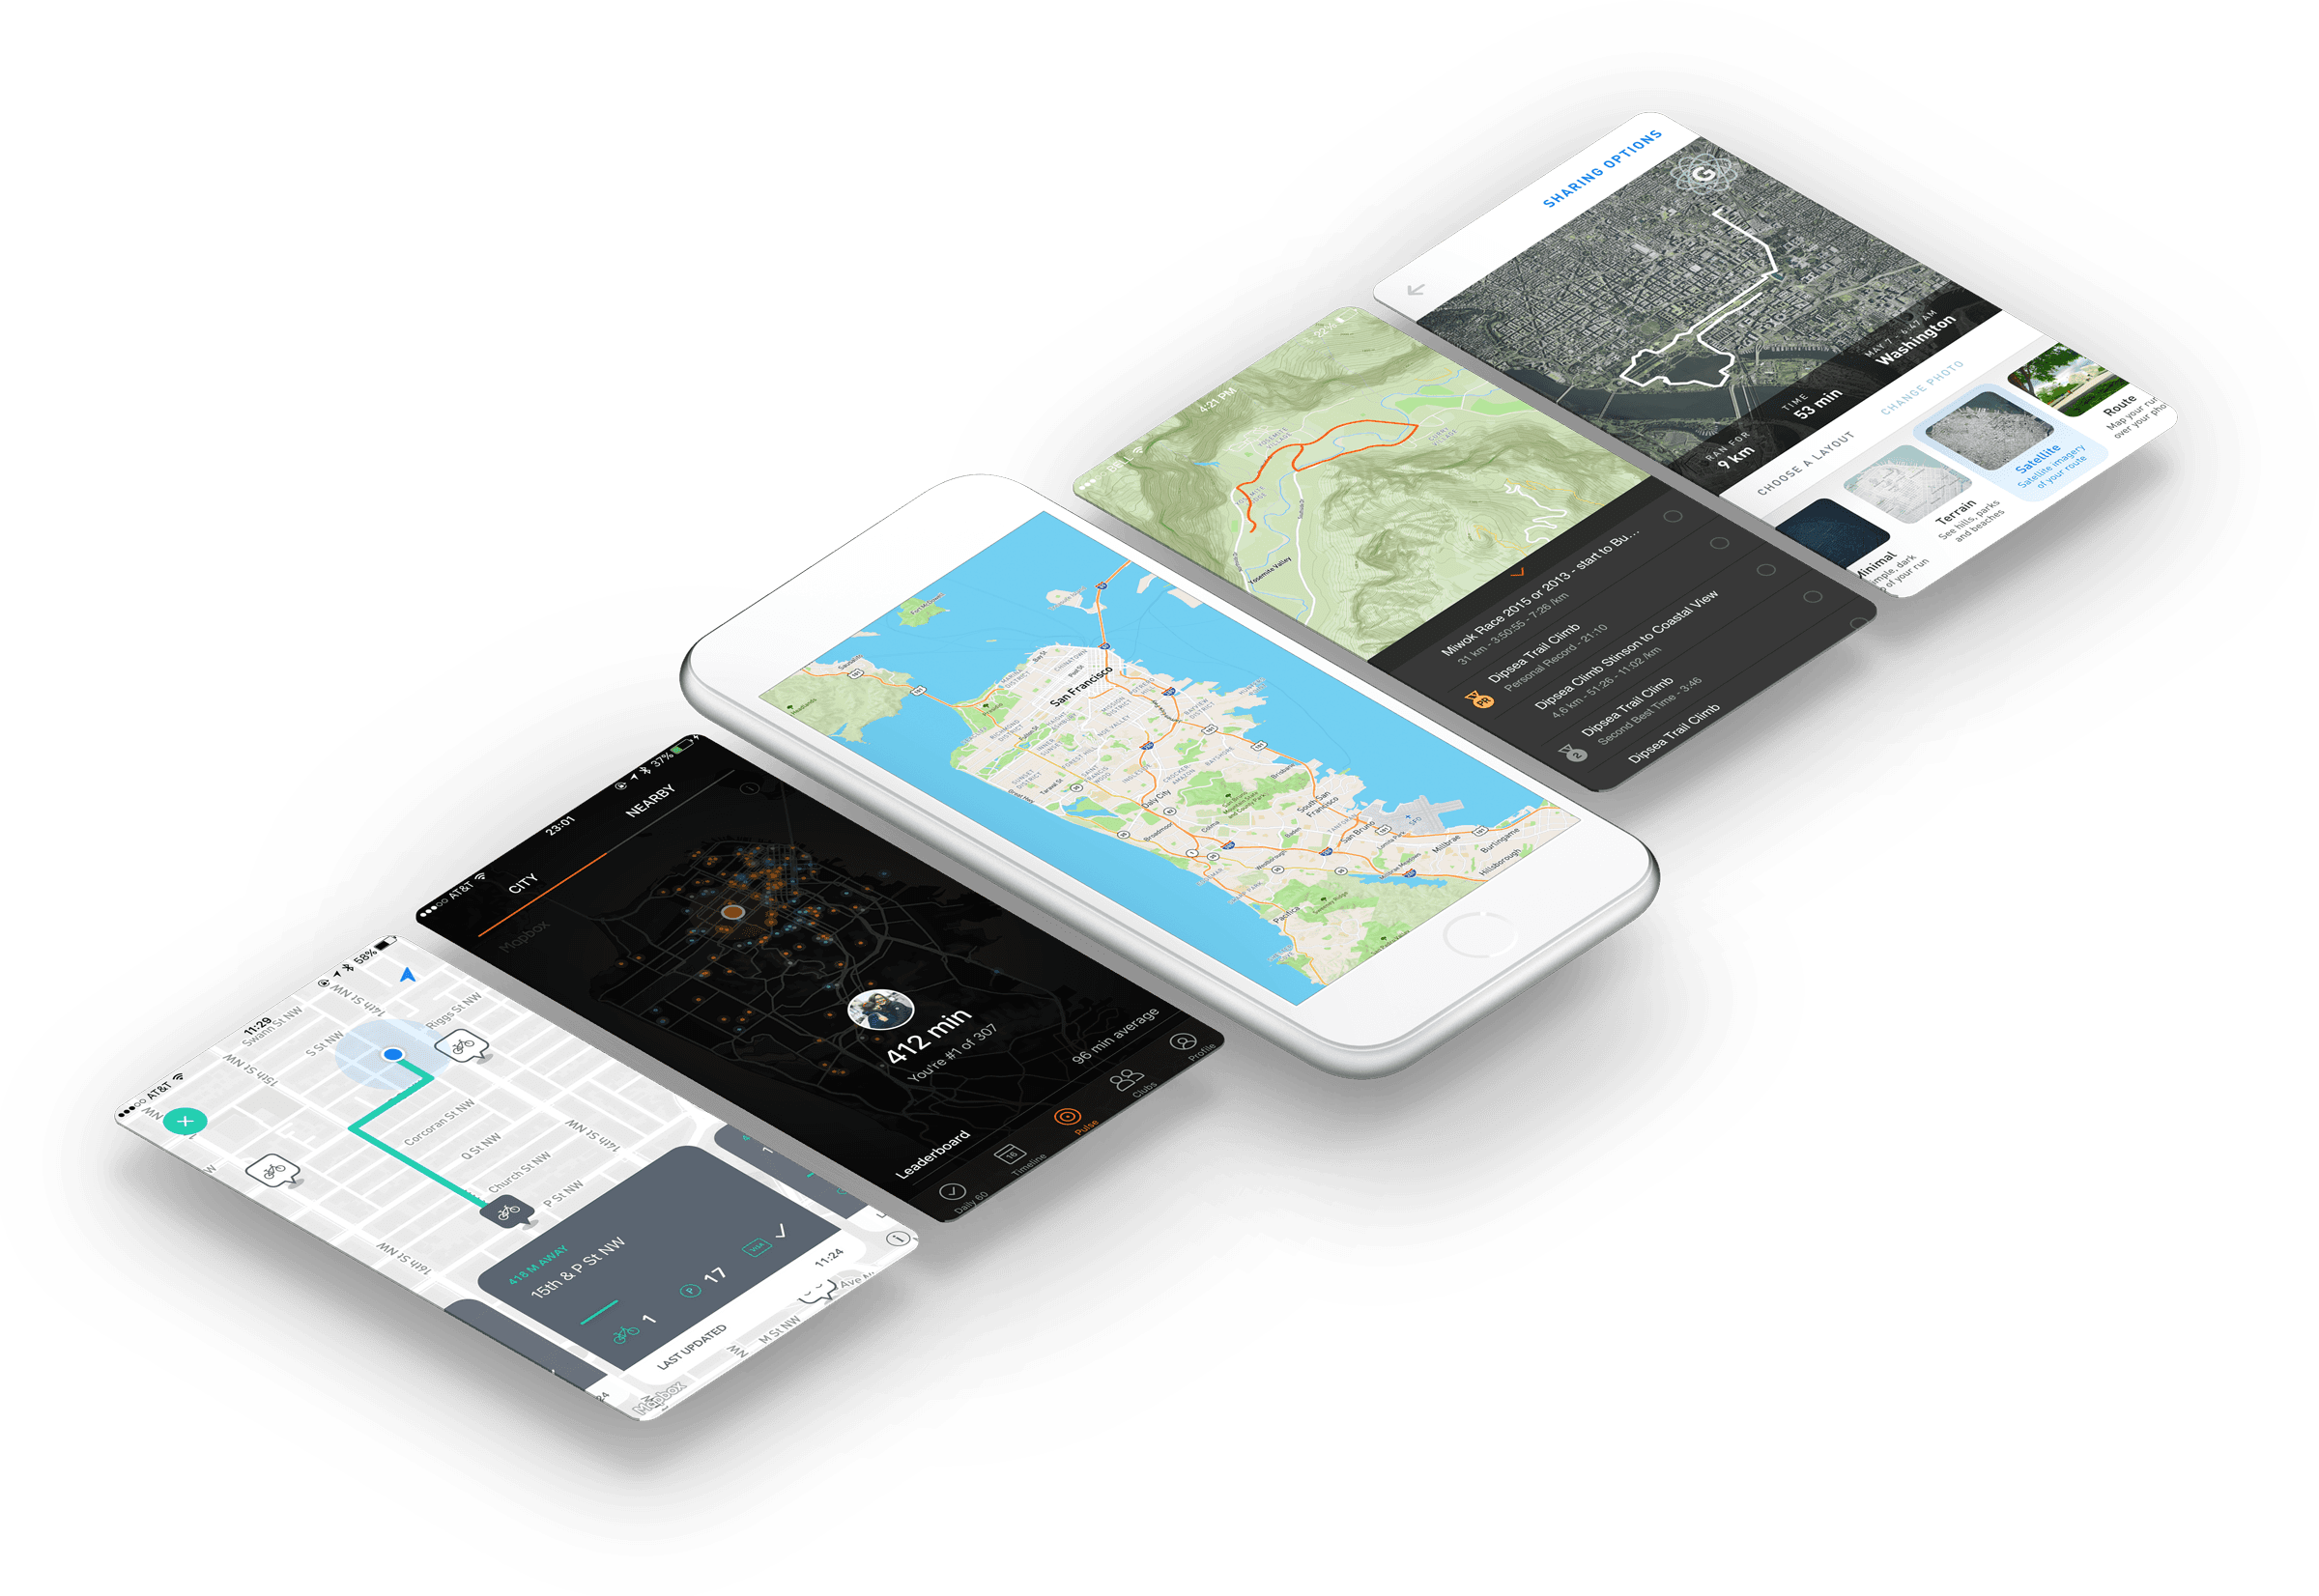 Mapbox maps via API on mobile phones